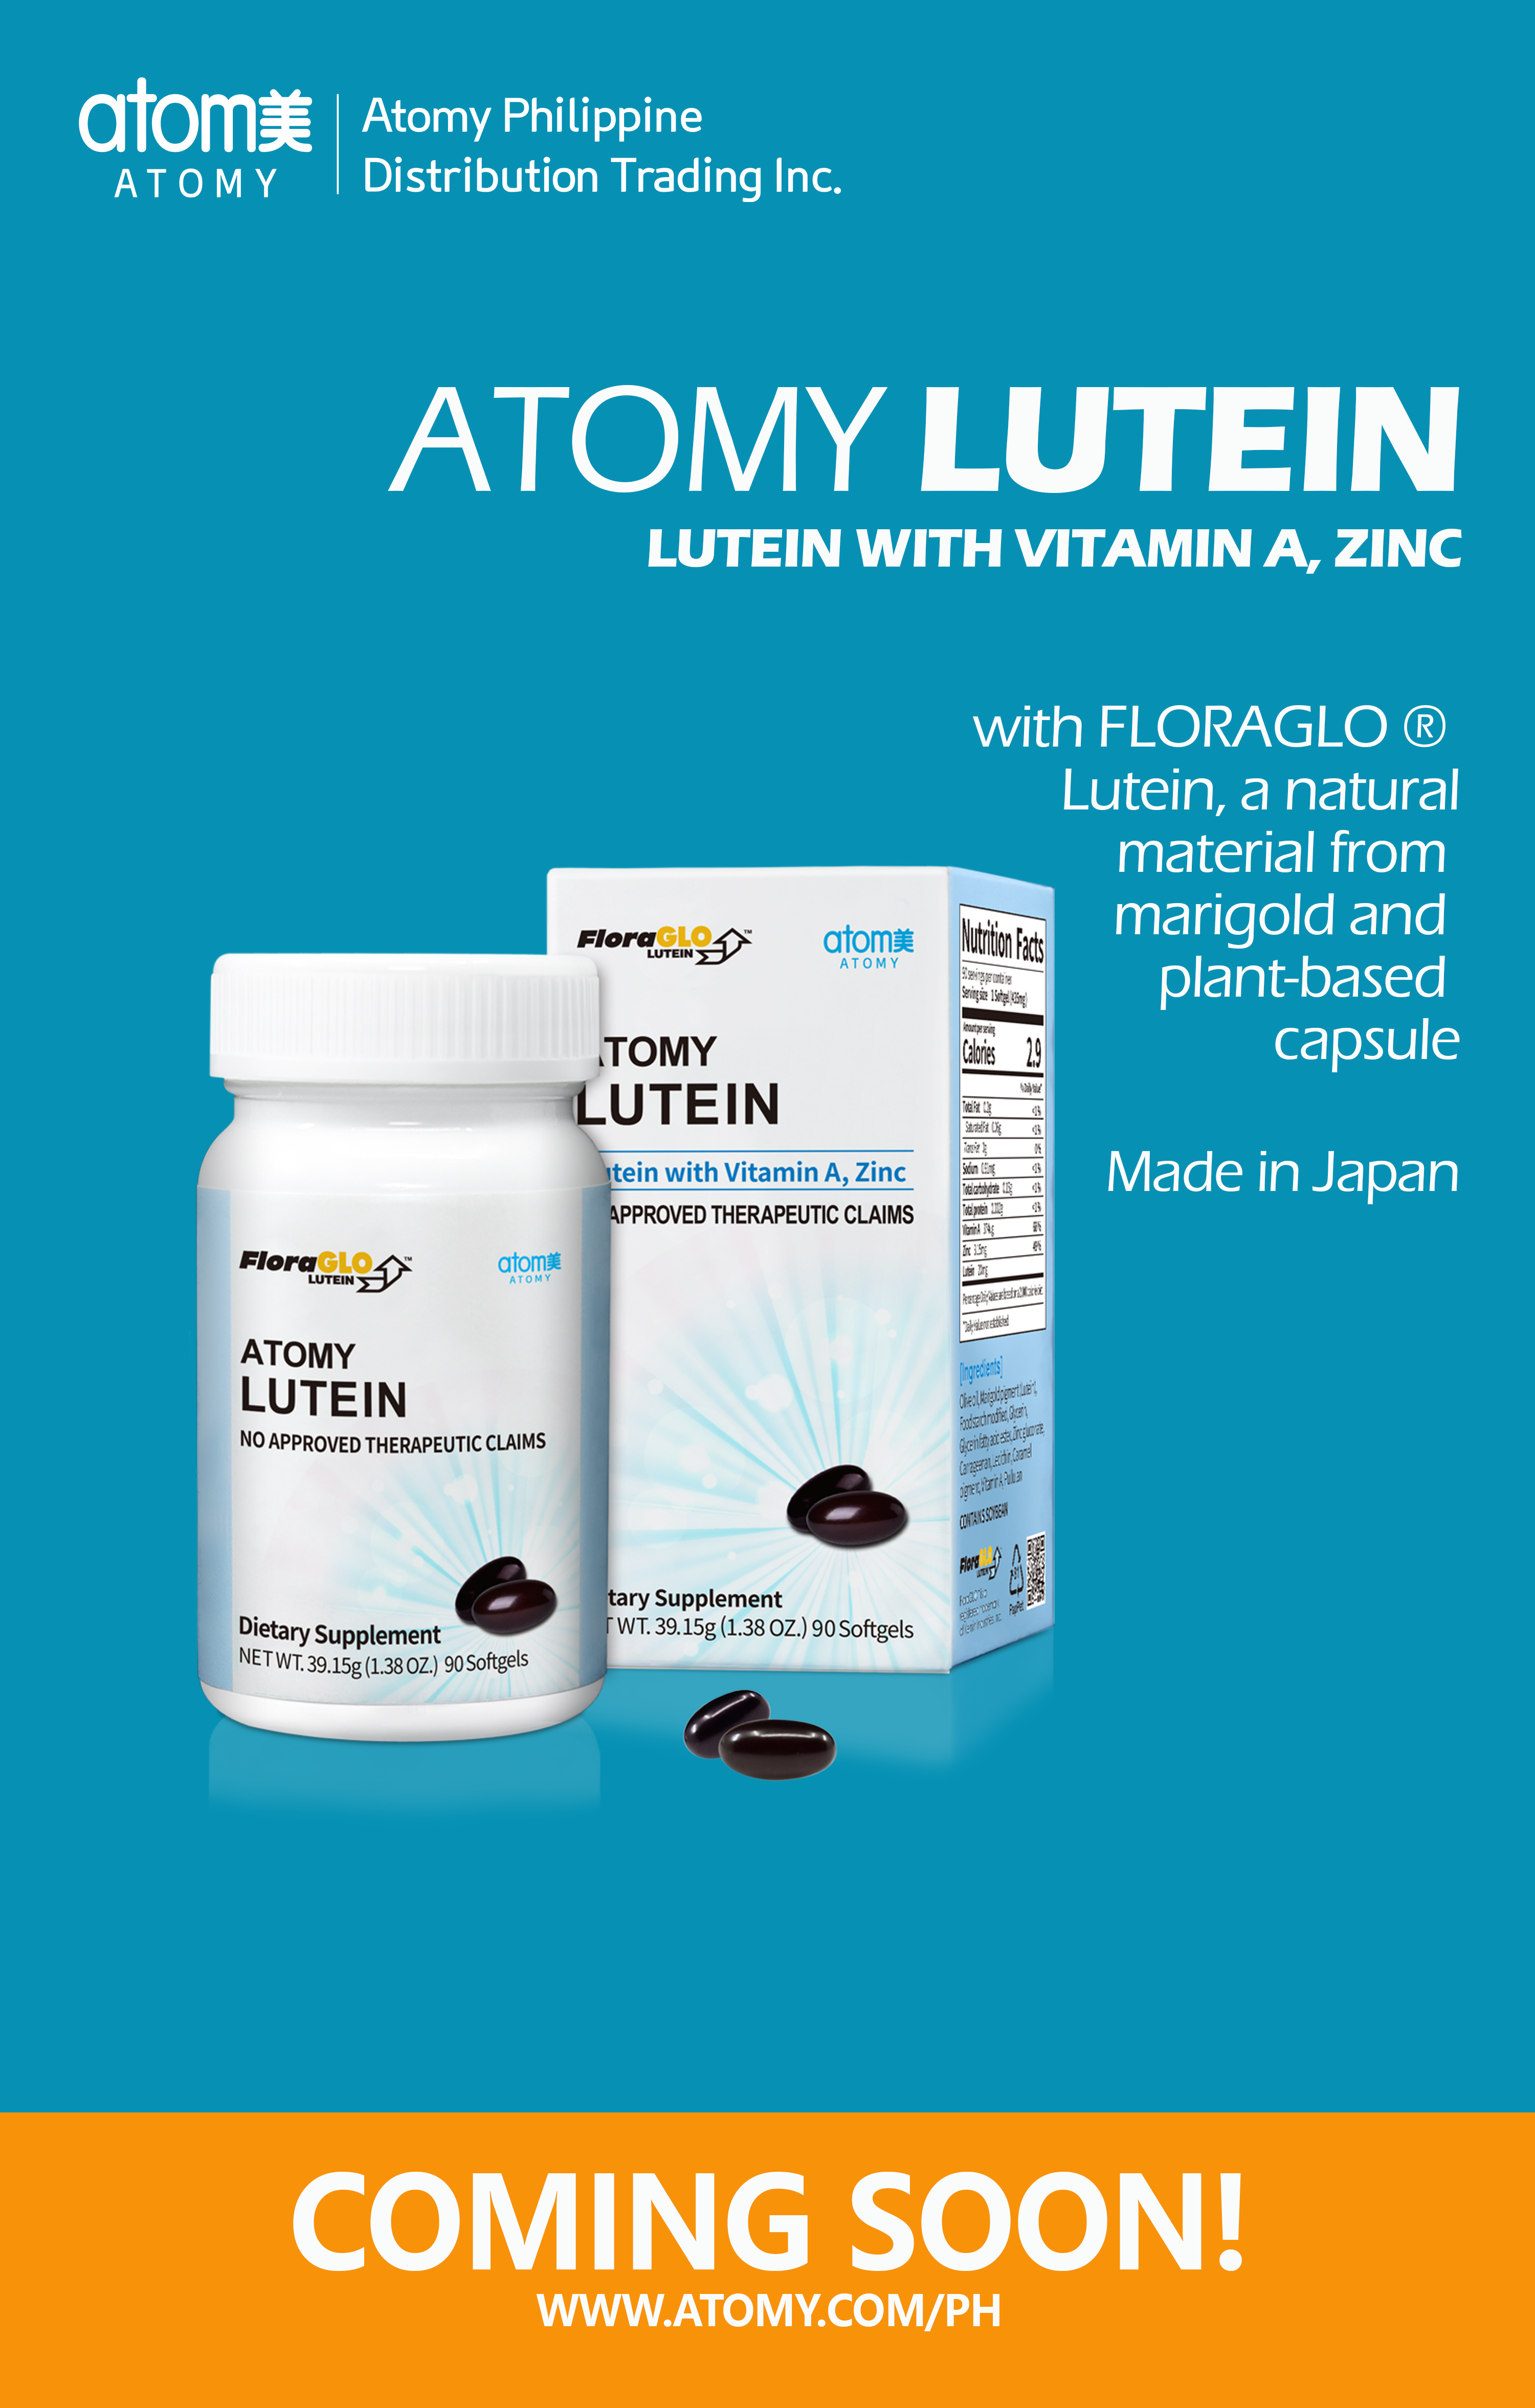 Product - Atomy Premium Lutein Coming Soon